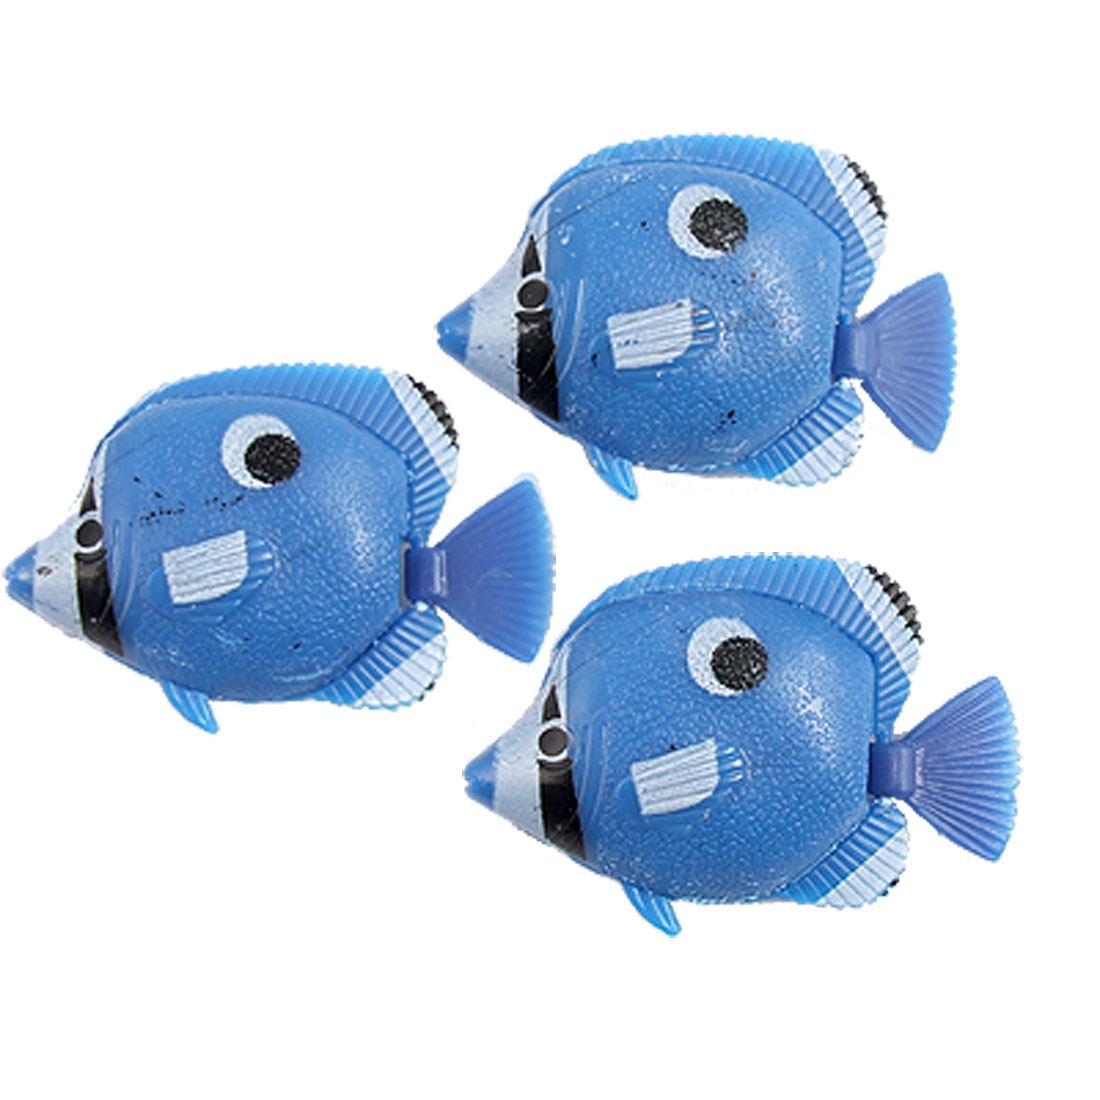 3 Pcs Wiggly Tail Blue Plastic Fish Ornament for Aquarium